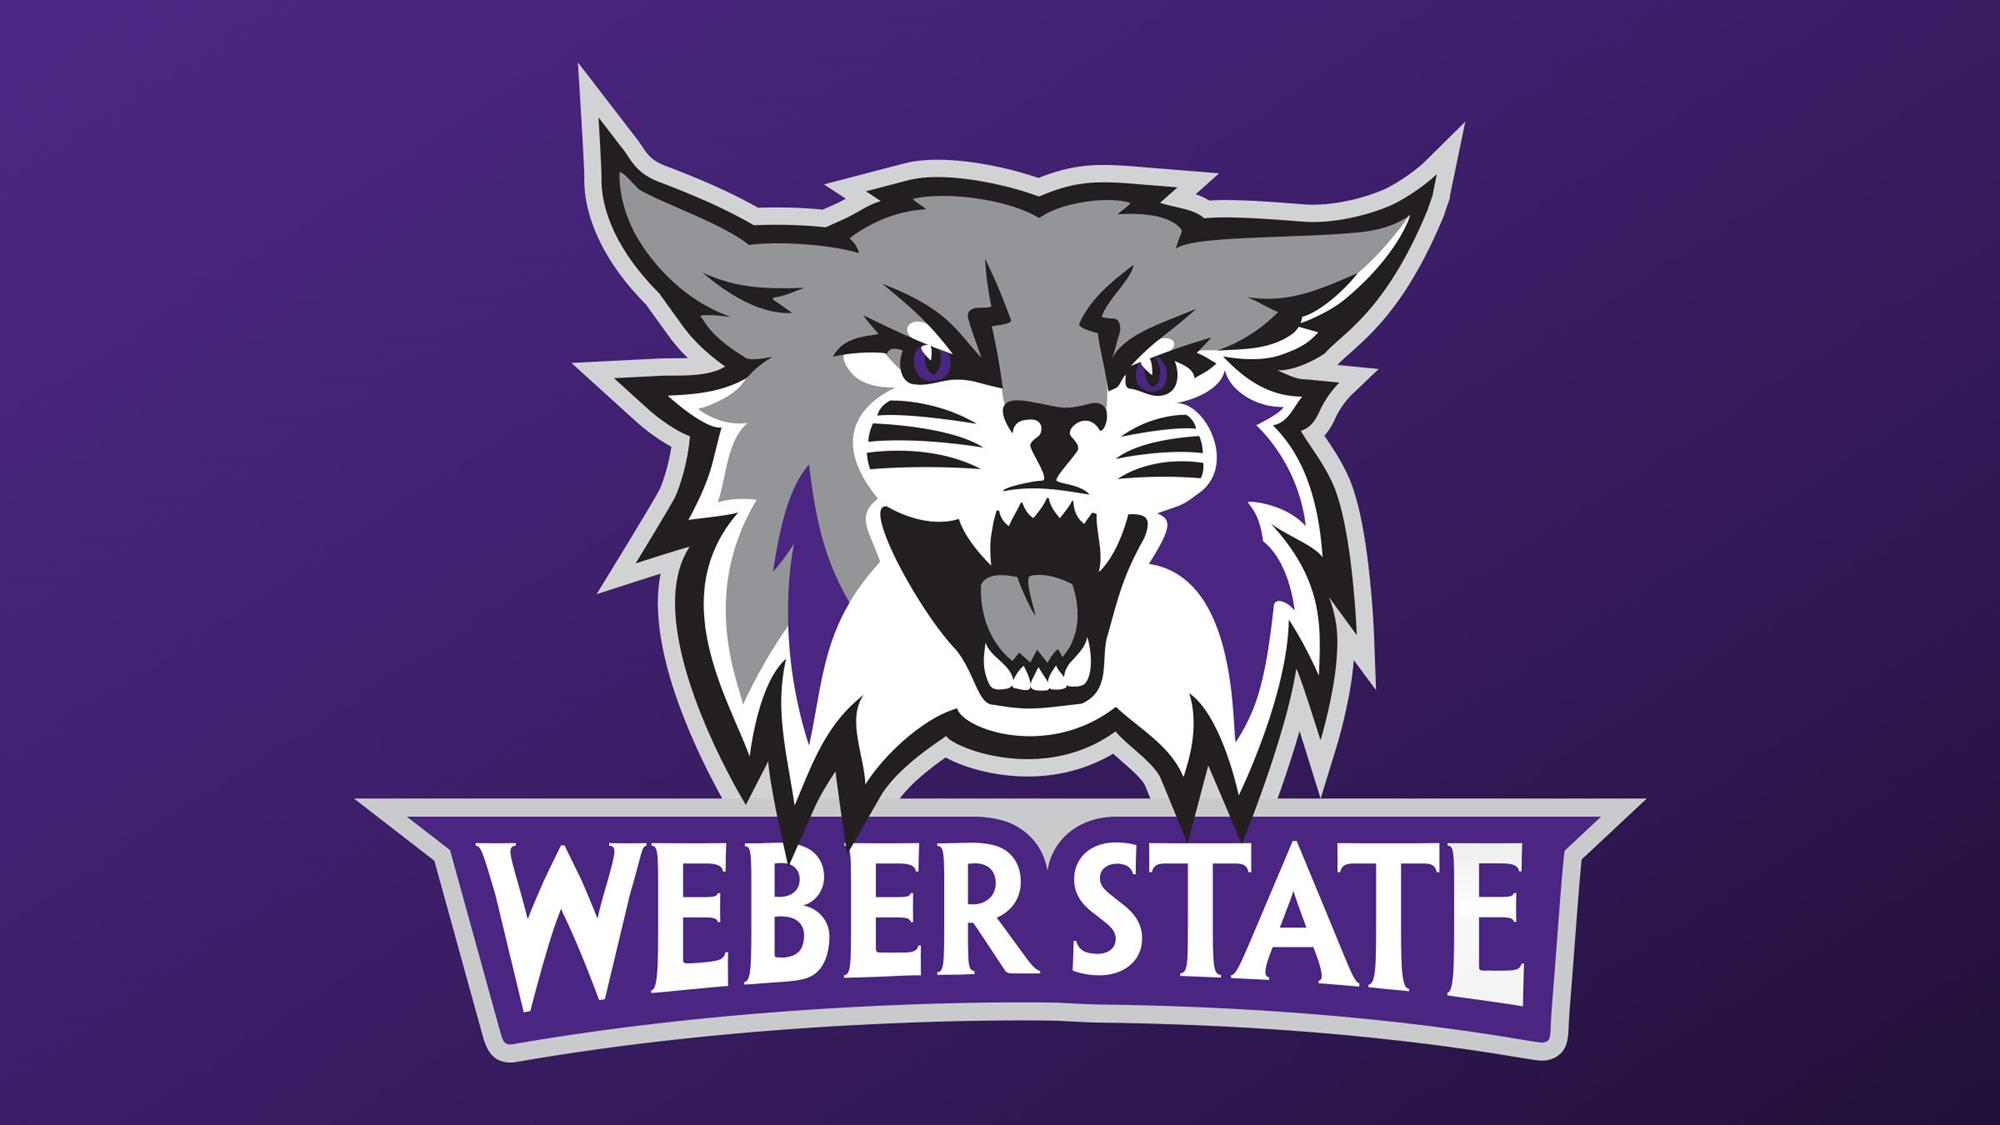 Weber state college asian and near